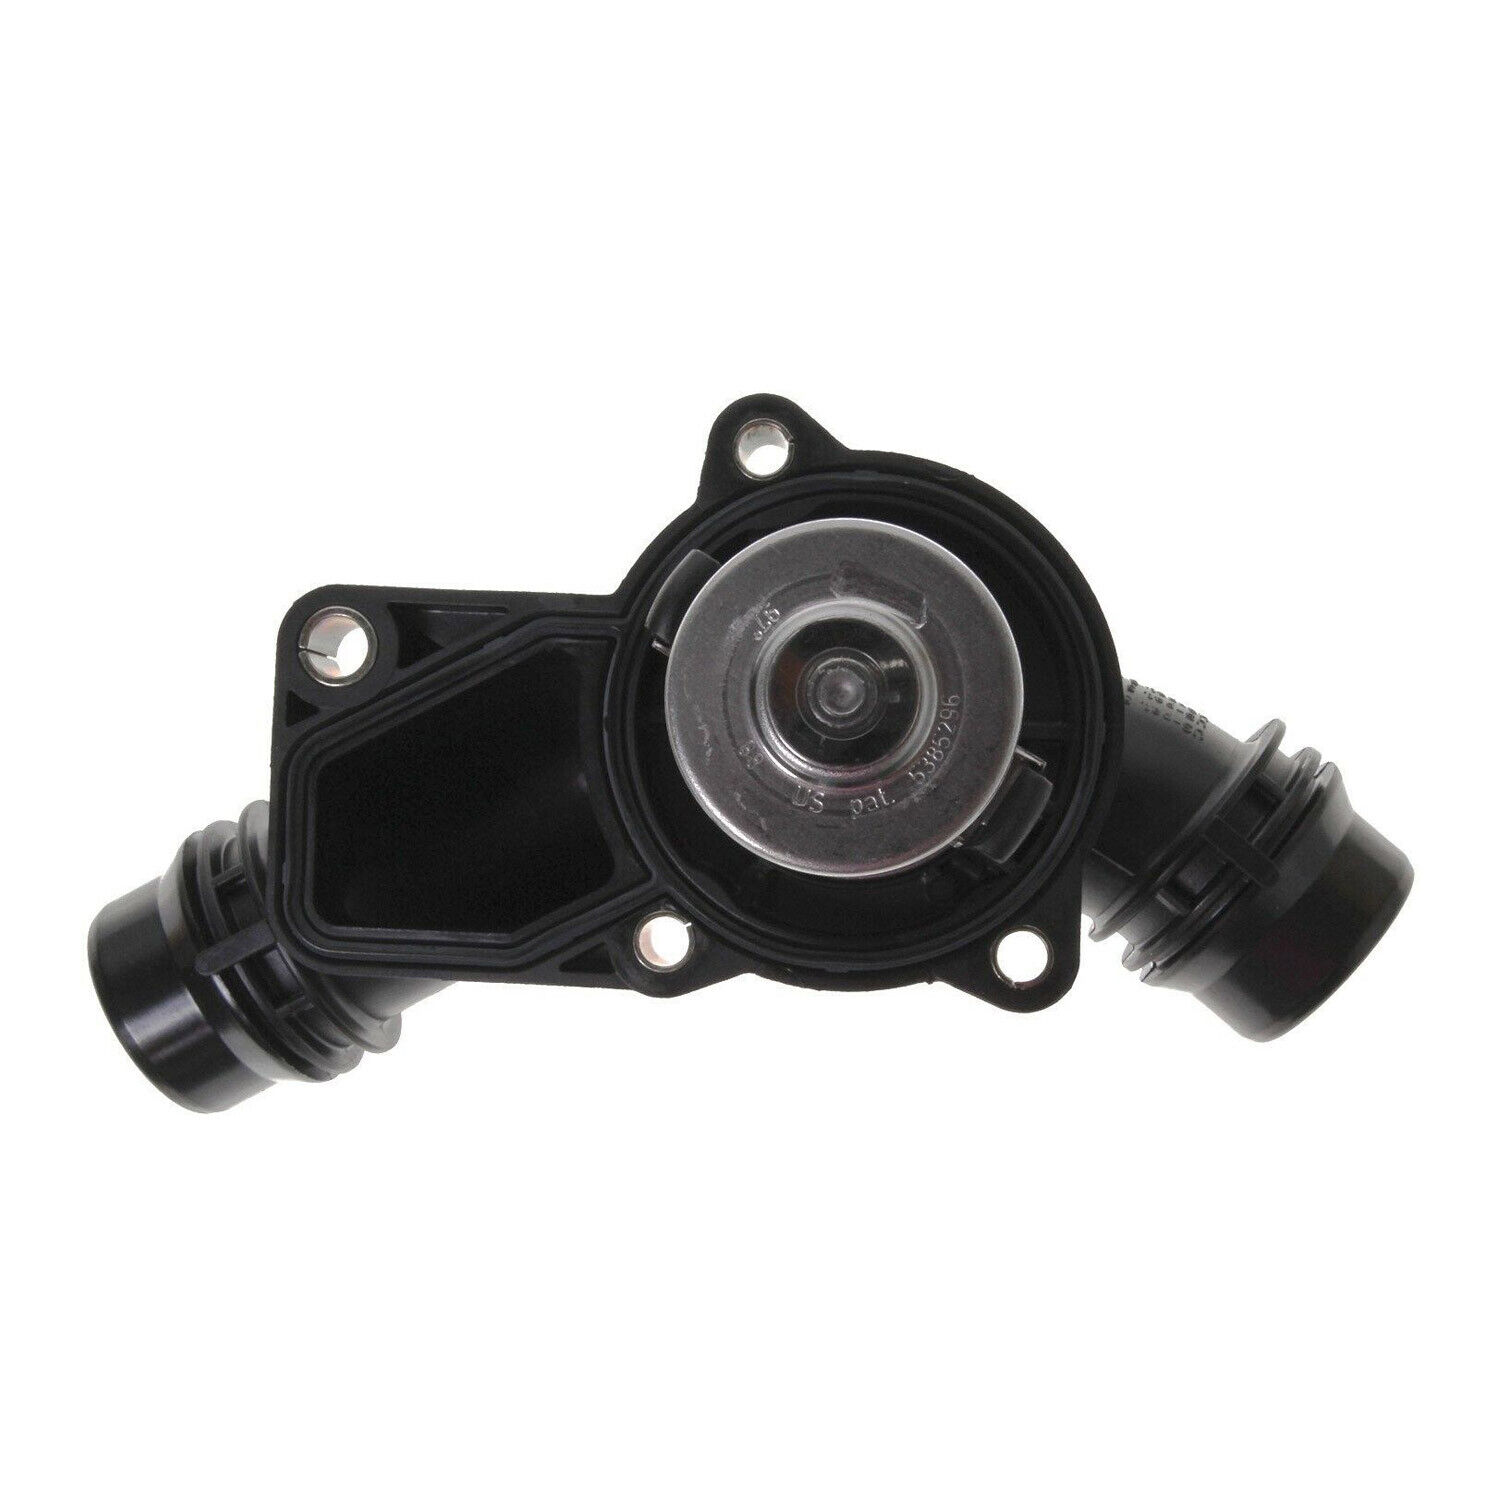 Stant Engine Coolant Thermostat for 1959-1983 Jeep CJ5 Cooling Housing vo